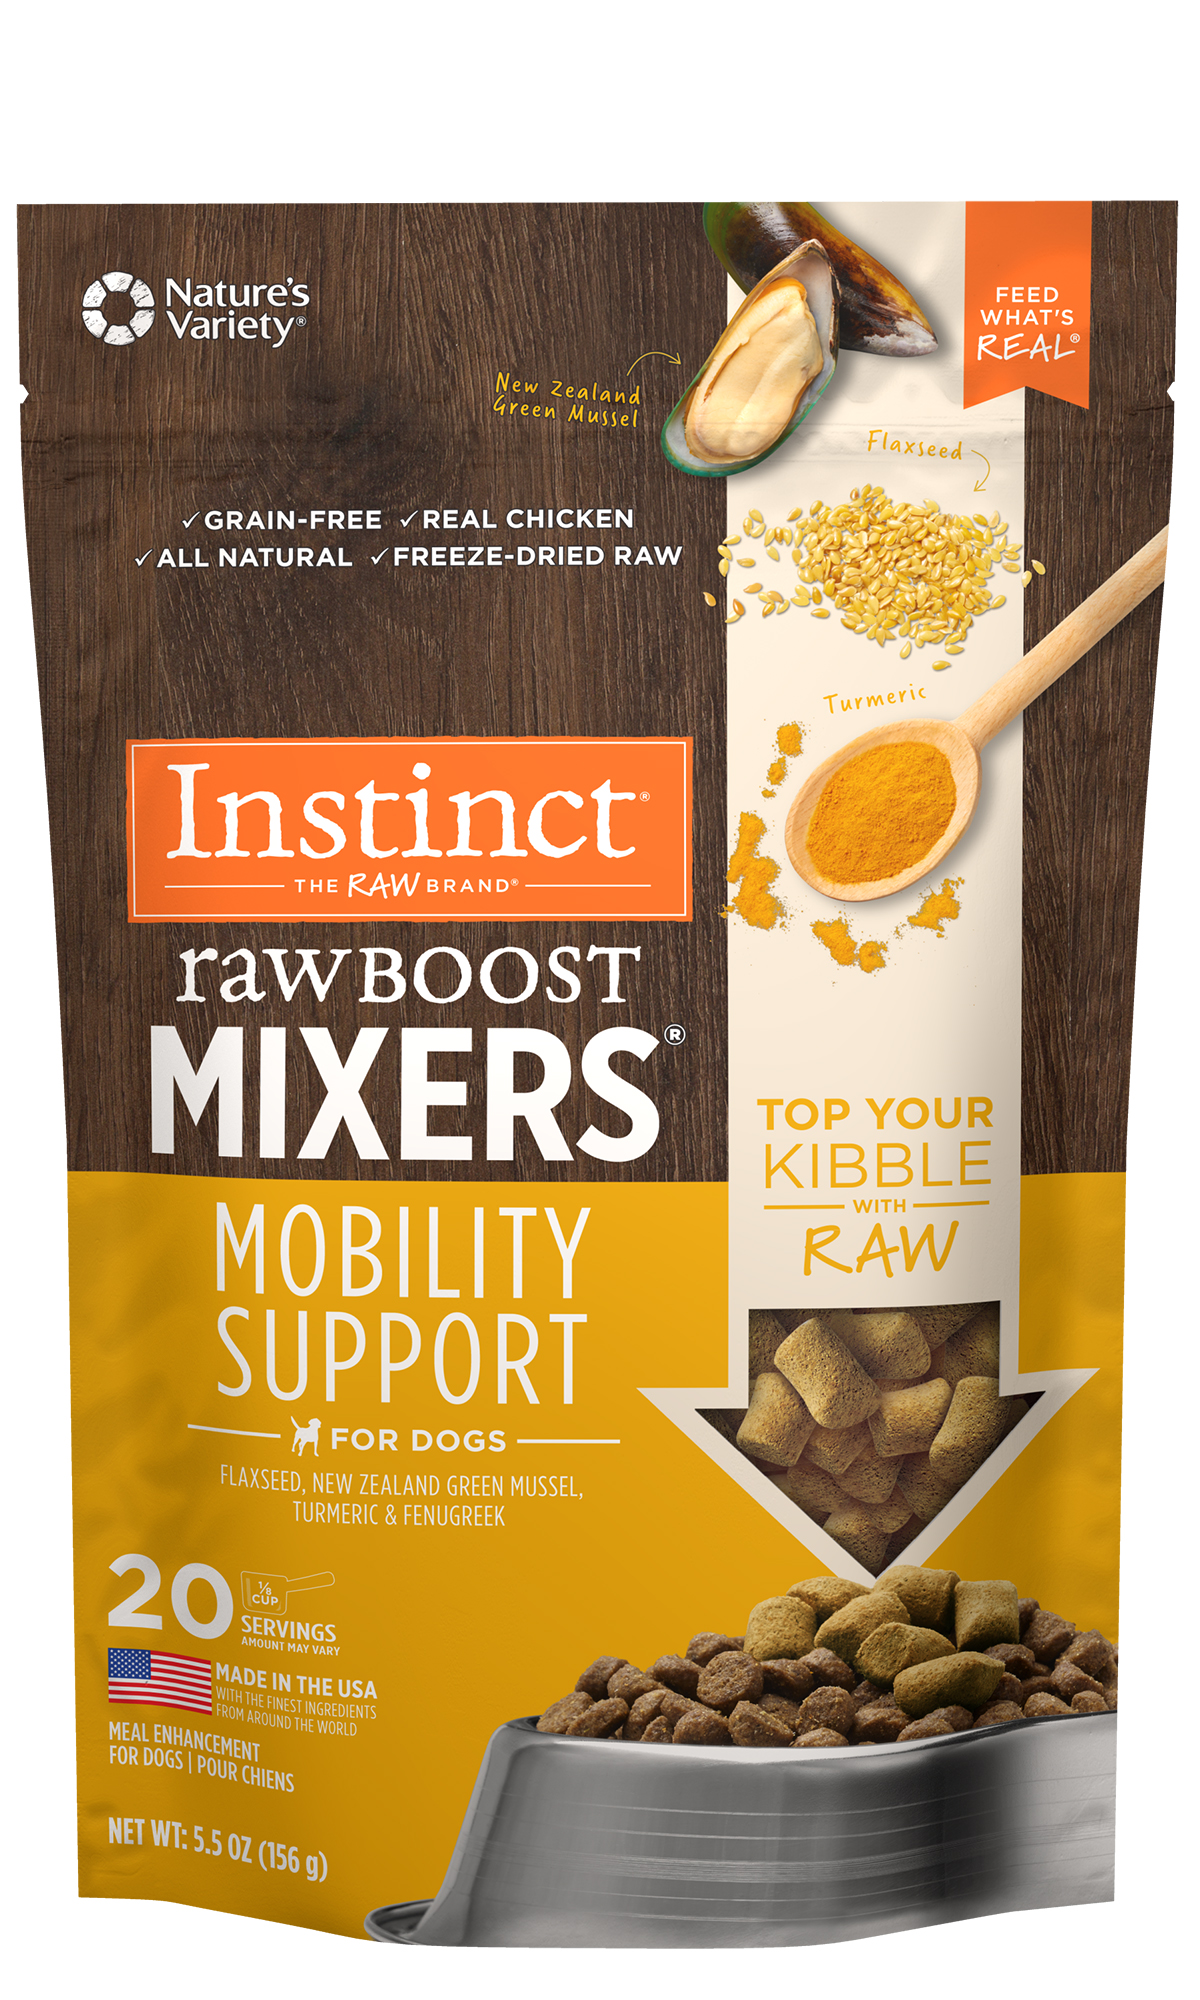 Nature's Variety Instinct Raw Boost Mixers Mobility Support, 5.5-oz